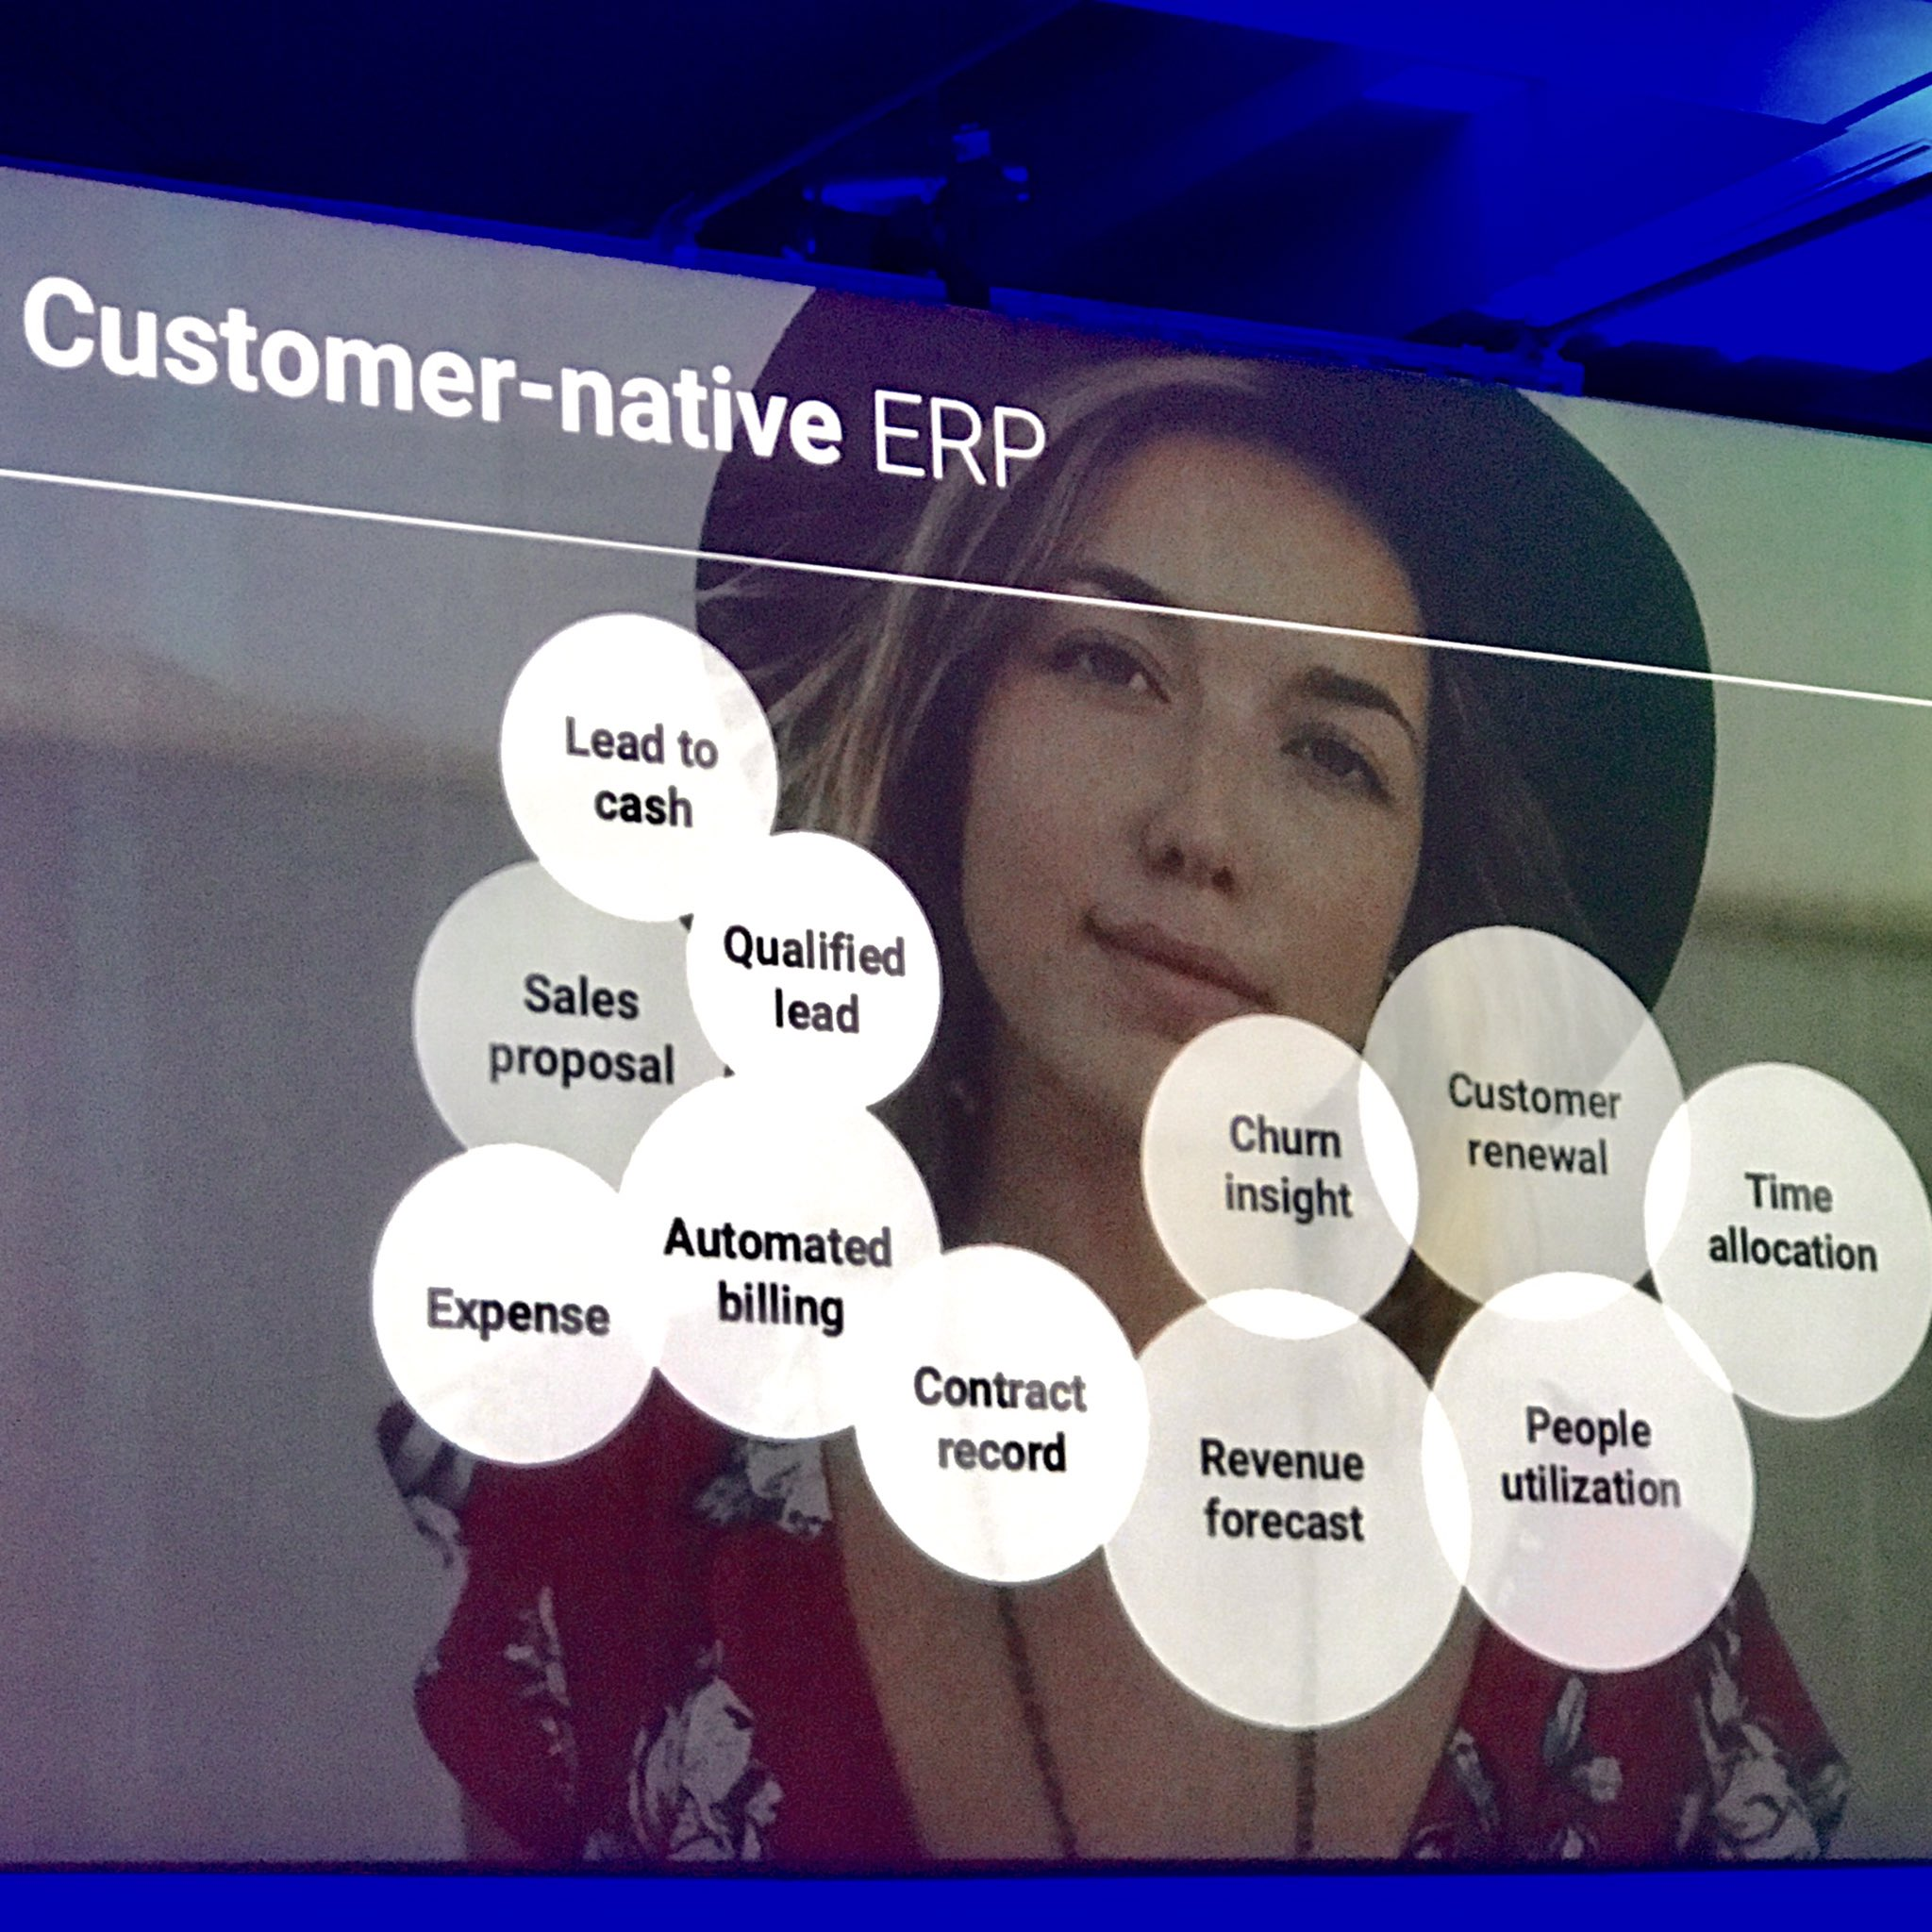 Model for customer native ERP moves from linear to organic model @FinancialForce #FFComm17 https://t.co/AYOmuxOooX